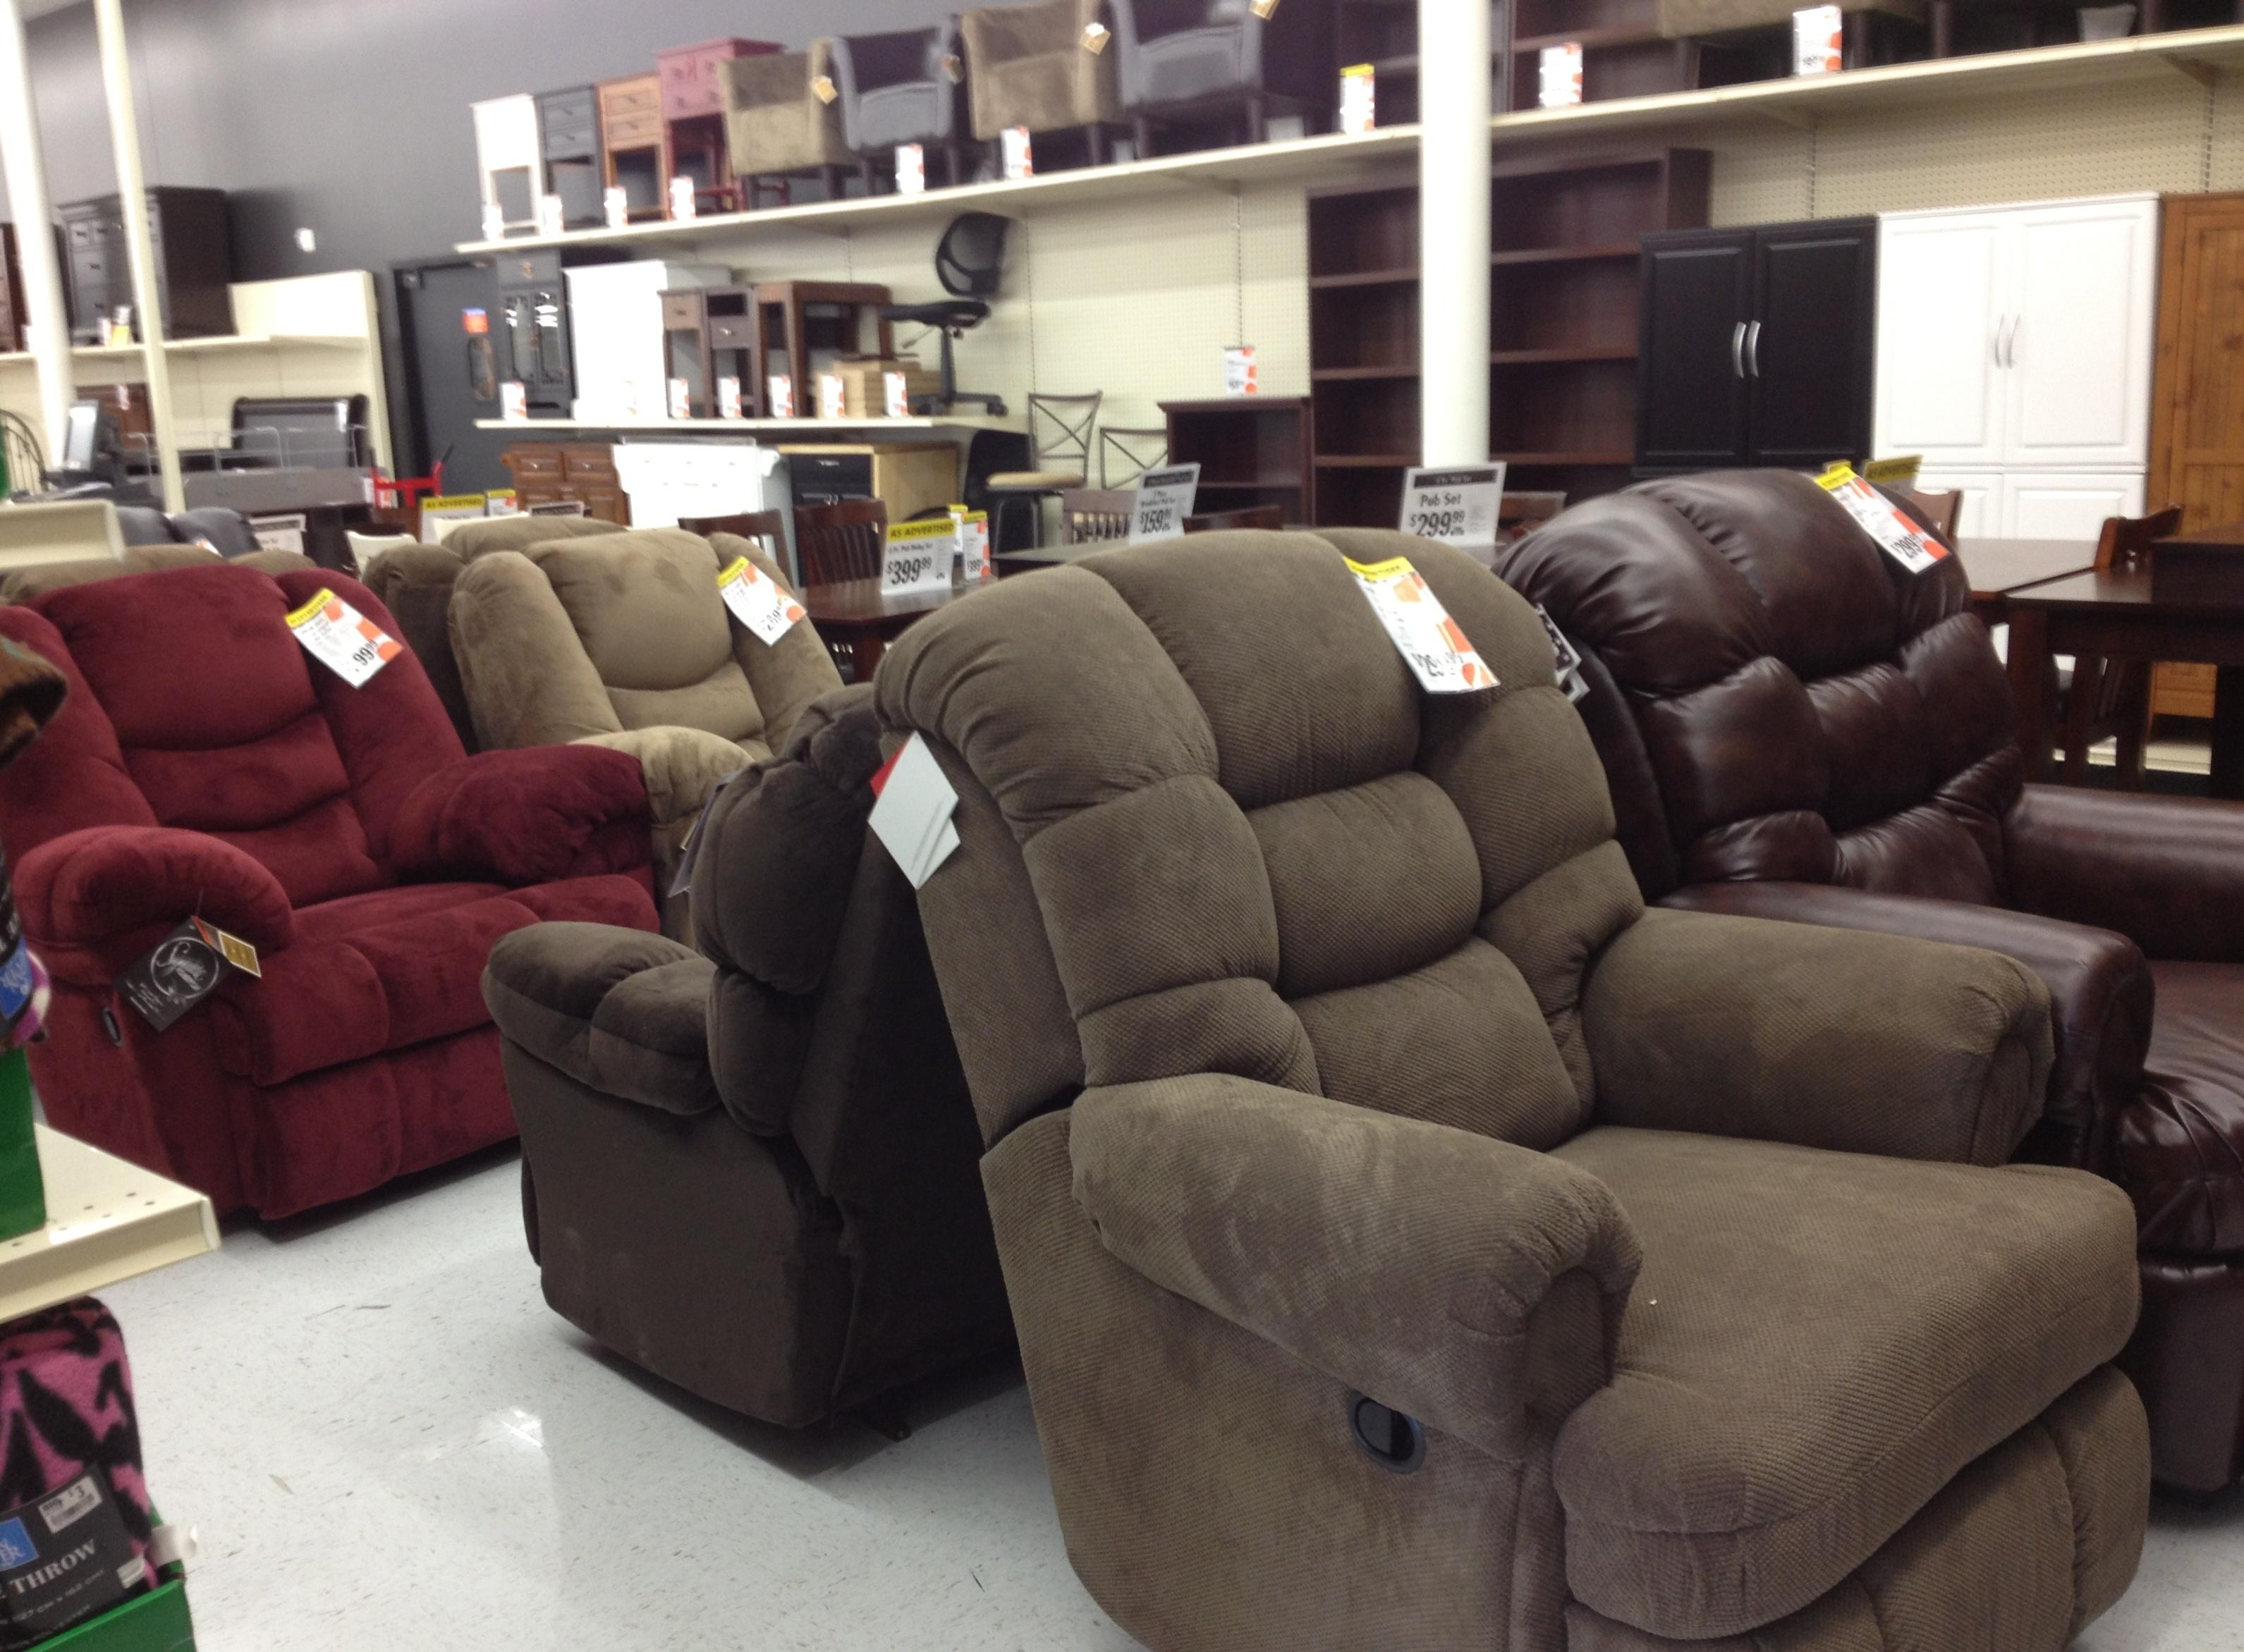 Simmons Sofas At Big Lots | Tehranmix Decoration Within Big Lots Simmons Furniture (Image 14 of 20)